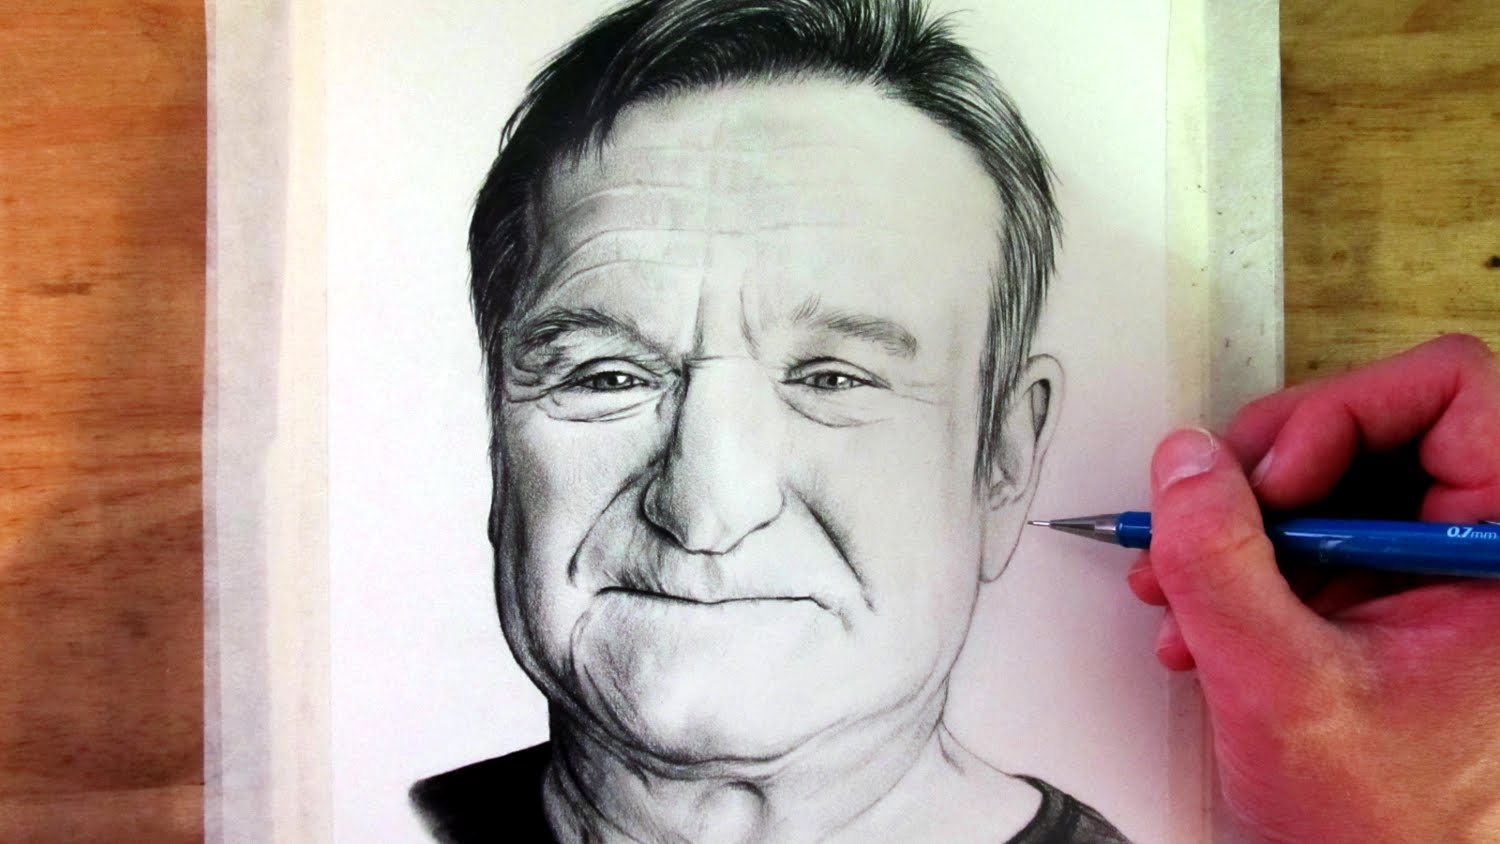 Drawn robin robin williams tribute Drawing YouTube Tribute  Robin